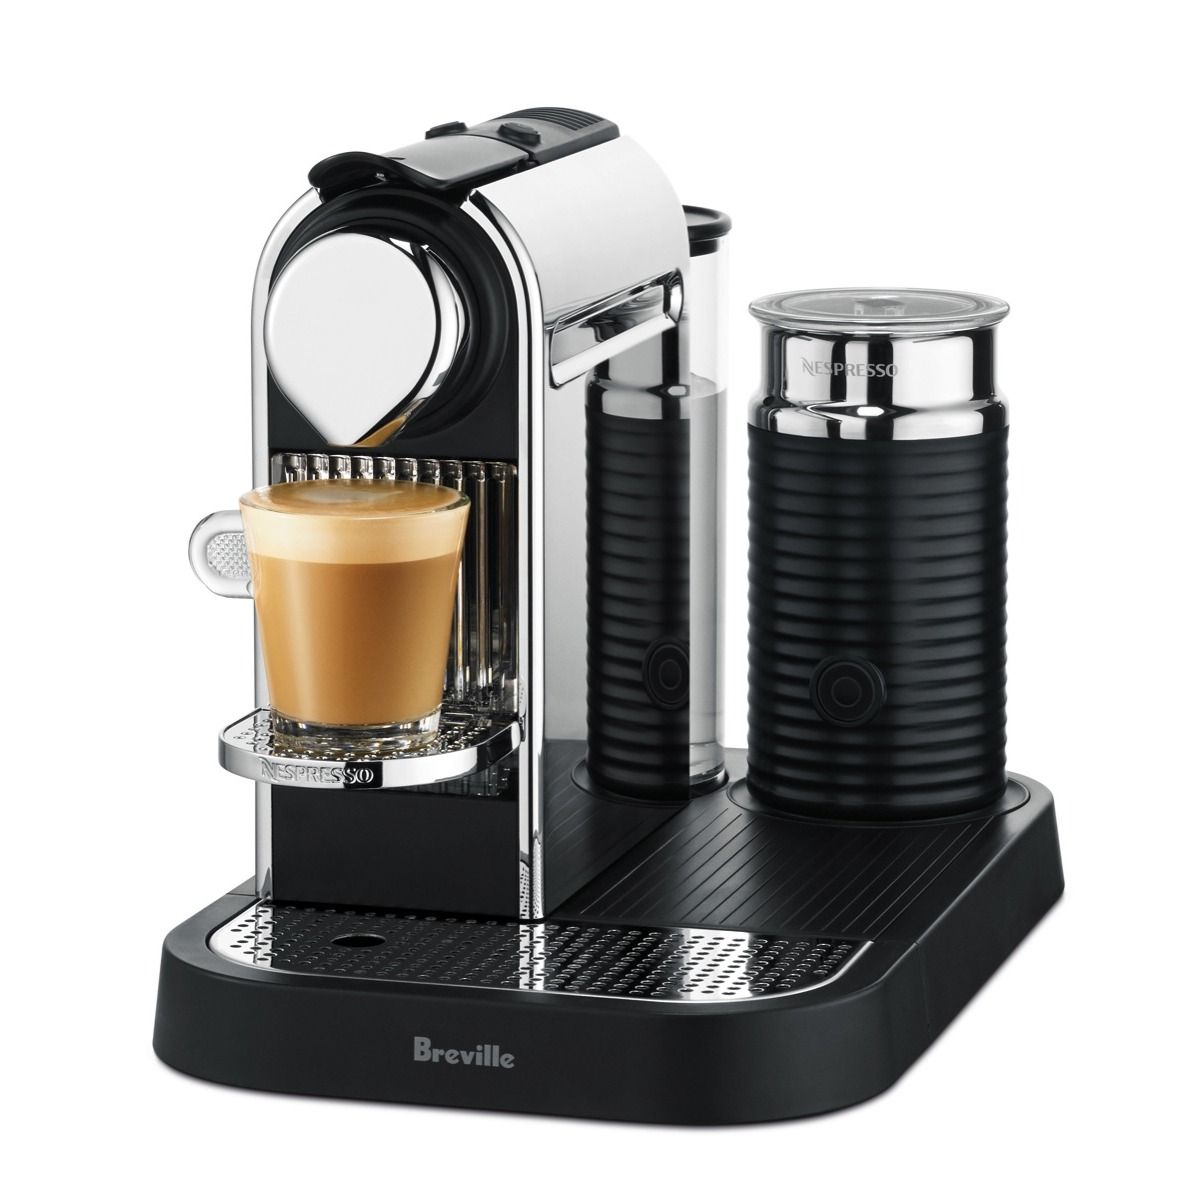 Uncategorized The Good Guys Kitchen Appliances check out the nespresso breville citiz and milk chrome at good guys